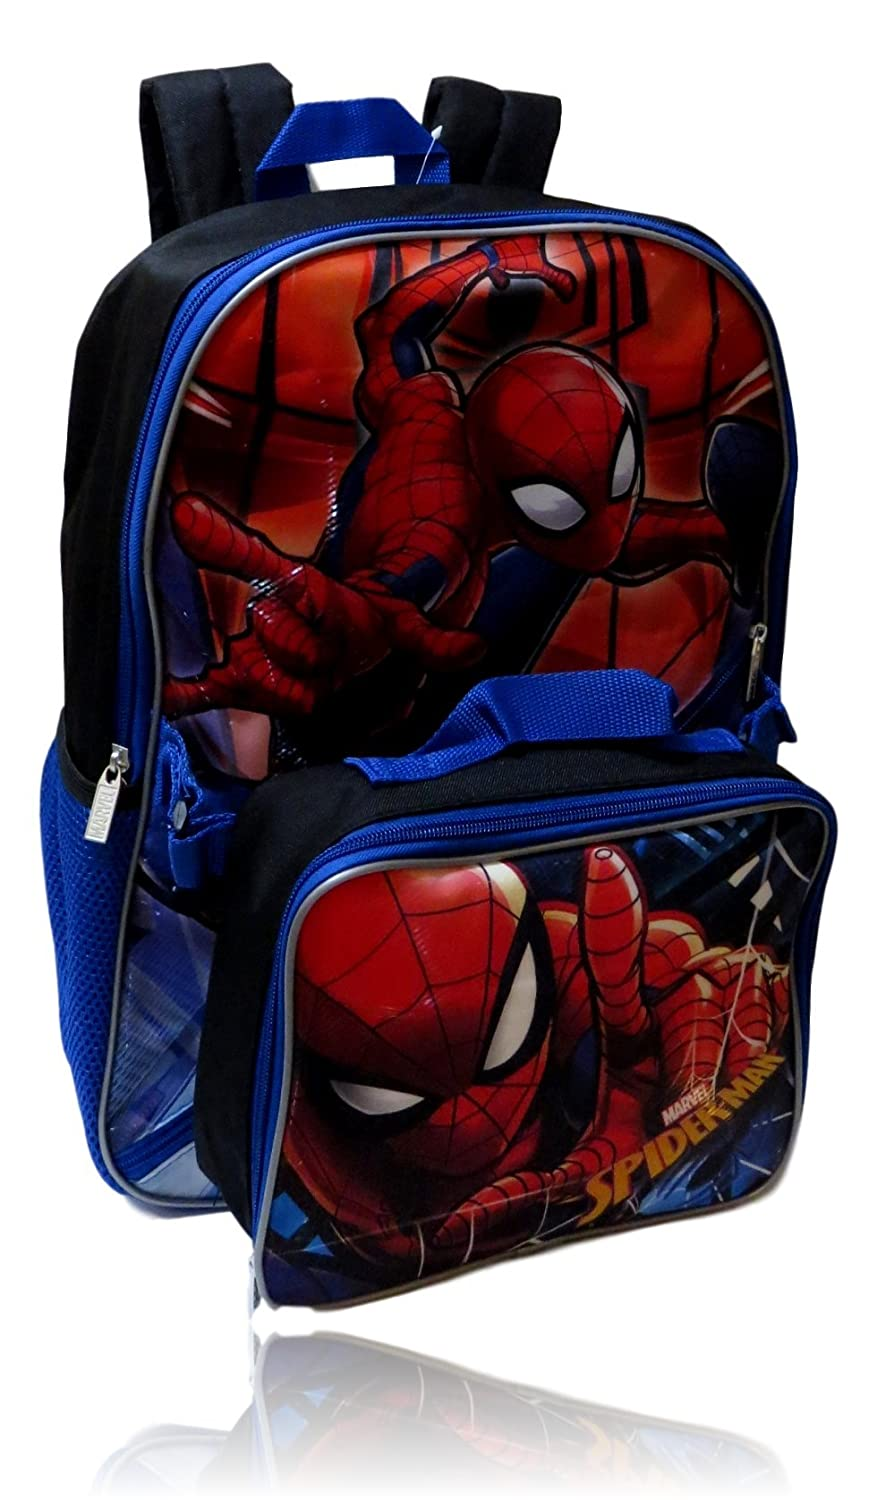 Marvel Spiderman Backpack W/ Detachable Insulated Lunch Box